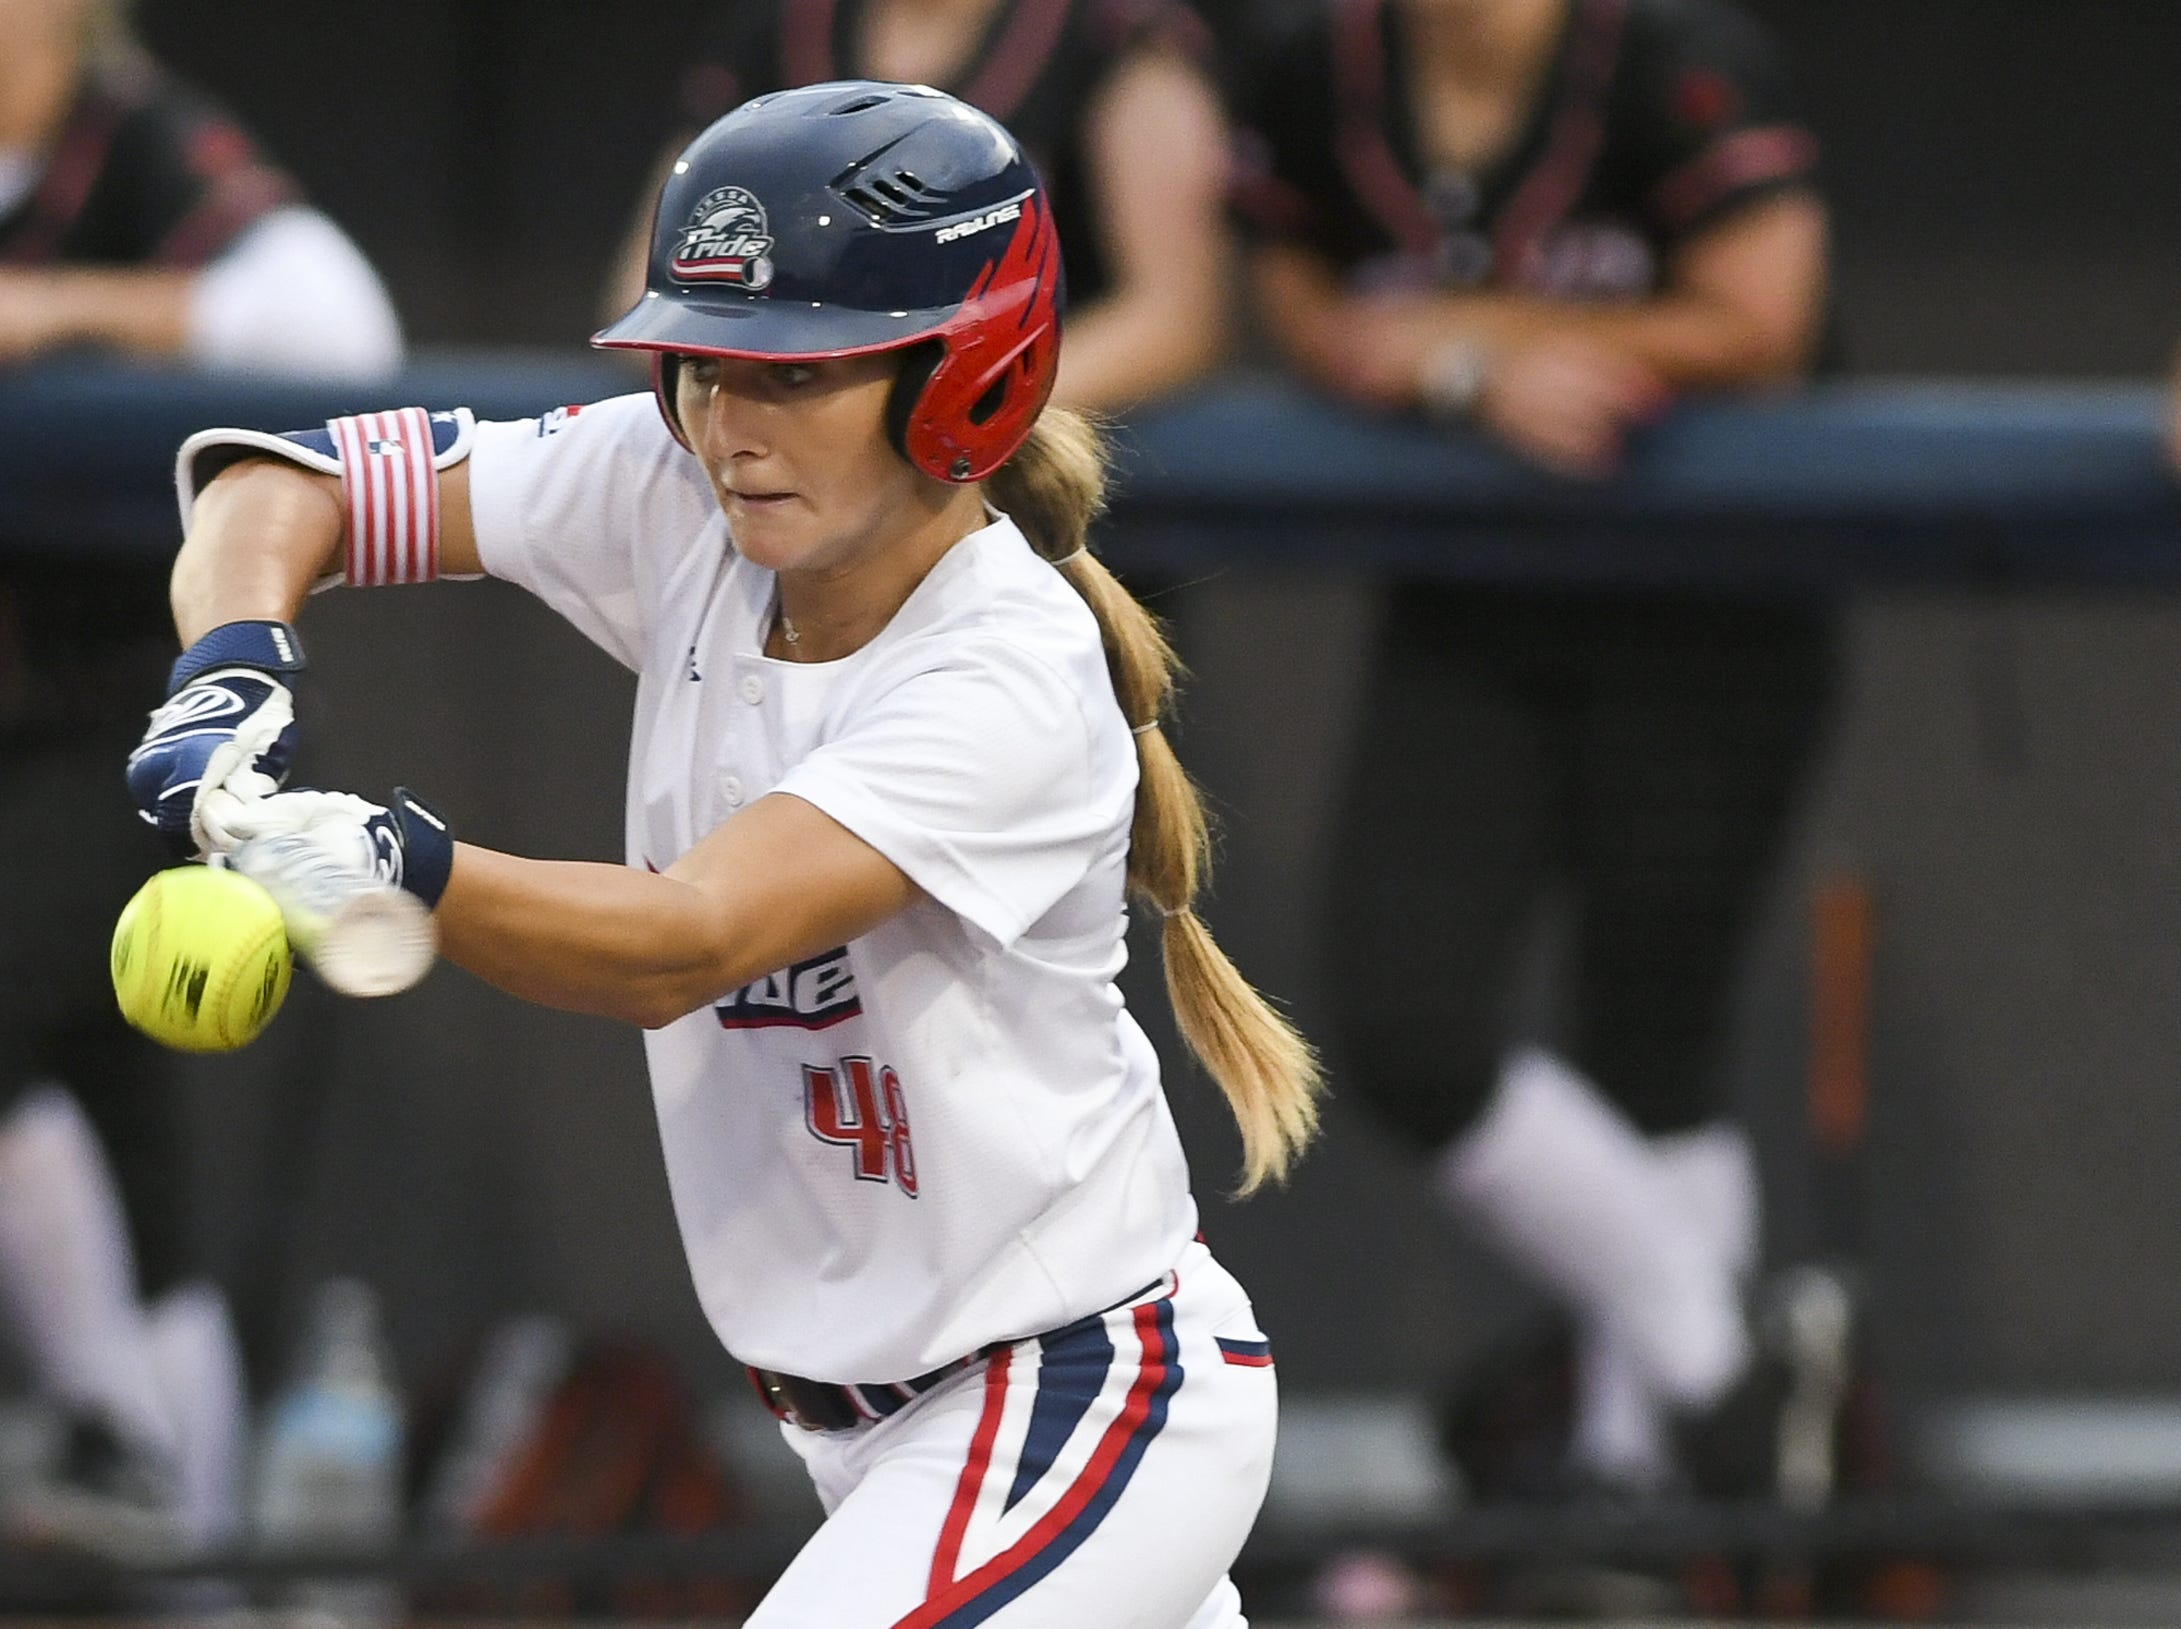 Allexis Bennett of the USSSA Pride bunts the ball during Friday's game in Viera.